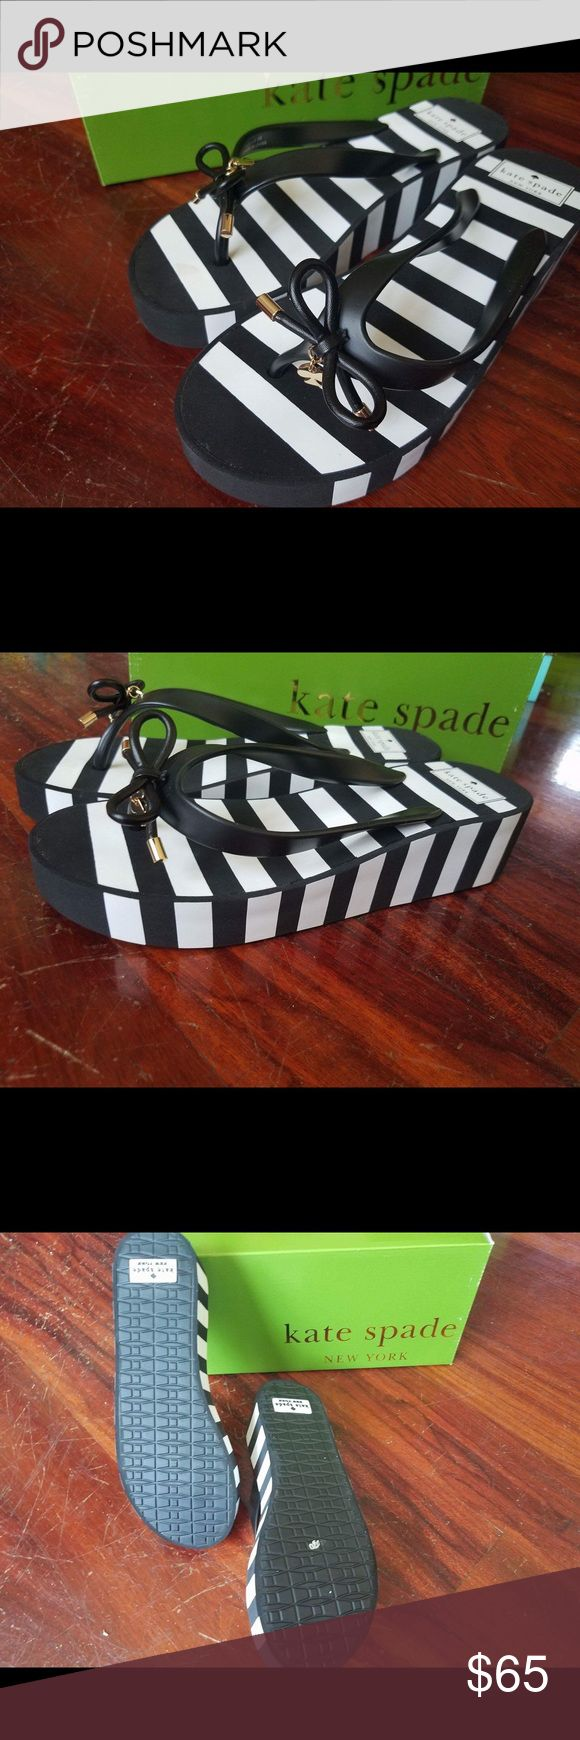 Kate Spade New York black and white striped wedges Case they do your black and white striped wedges brand-new in box 100% authentic kate spade Shoes Wedges